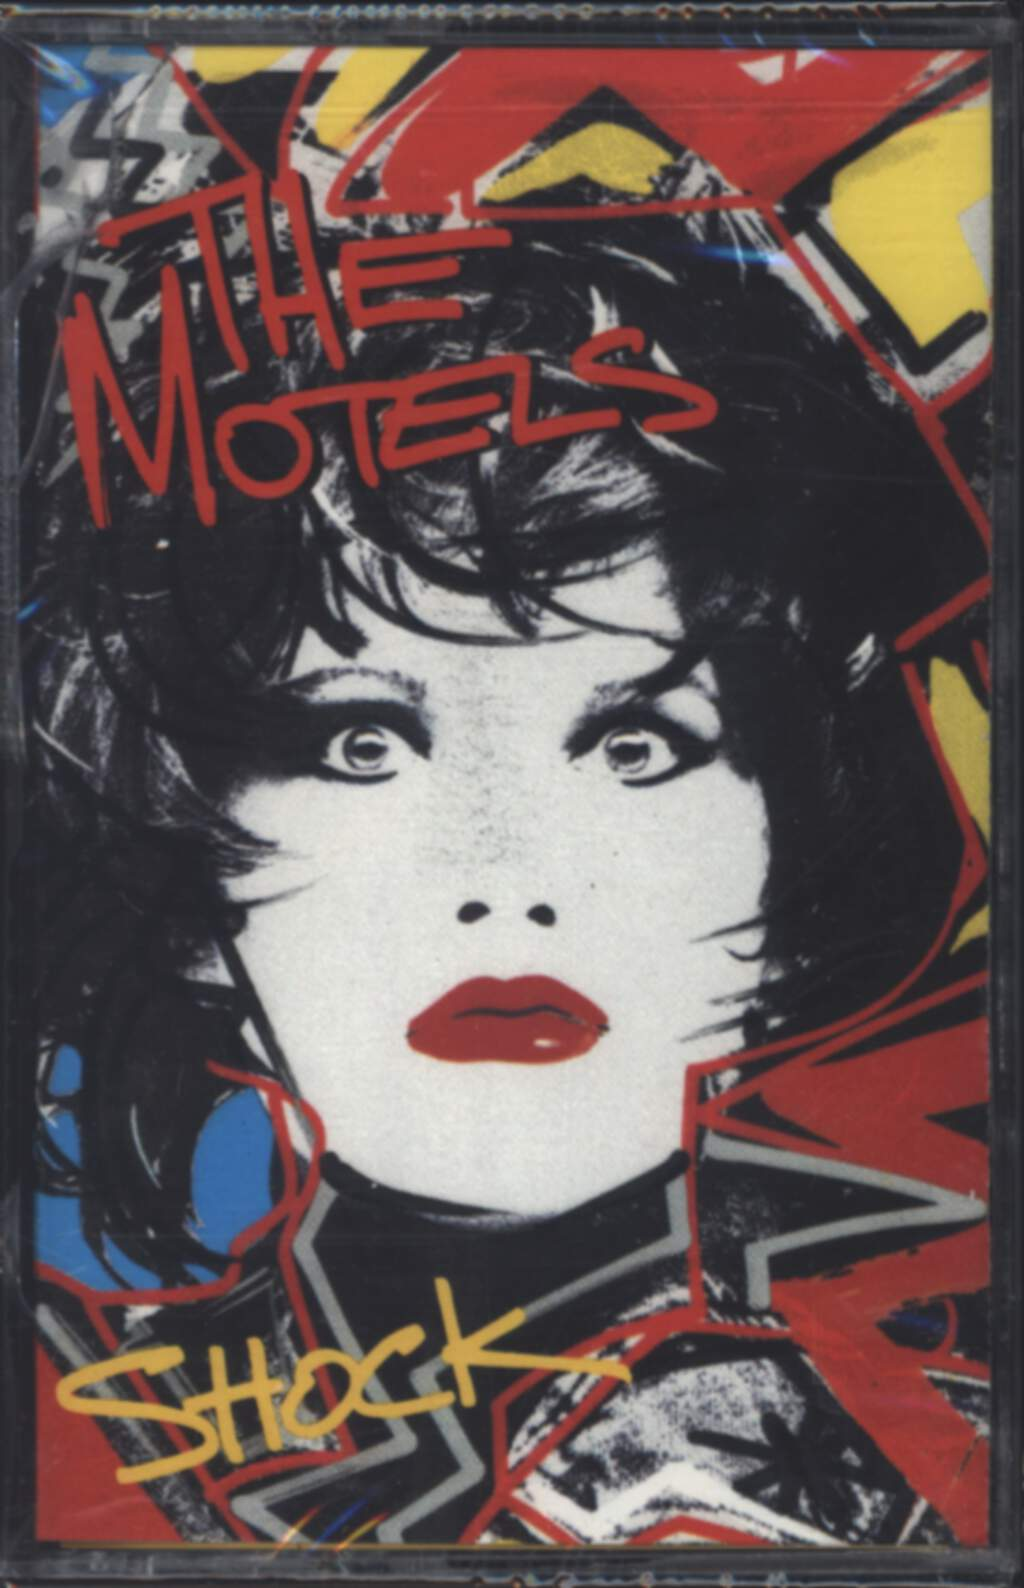 The Motels: Shock, Compact Cassette